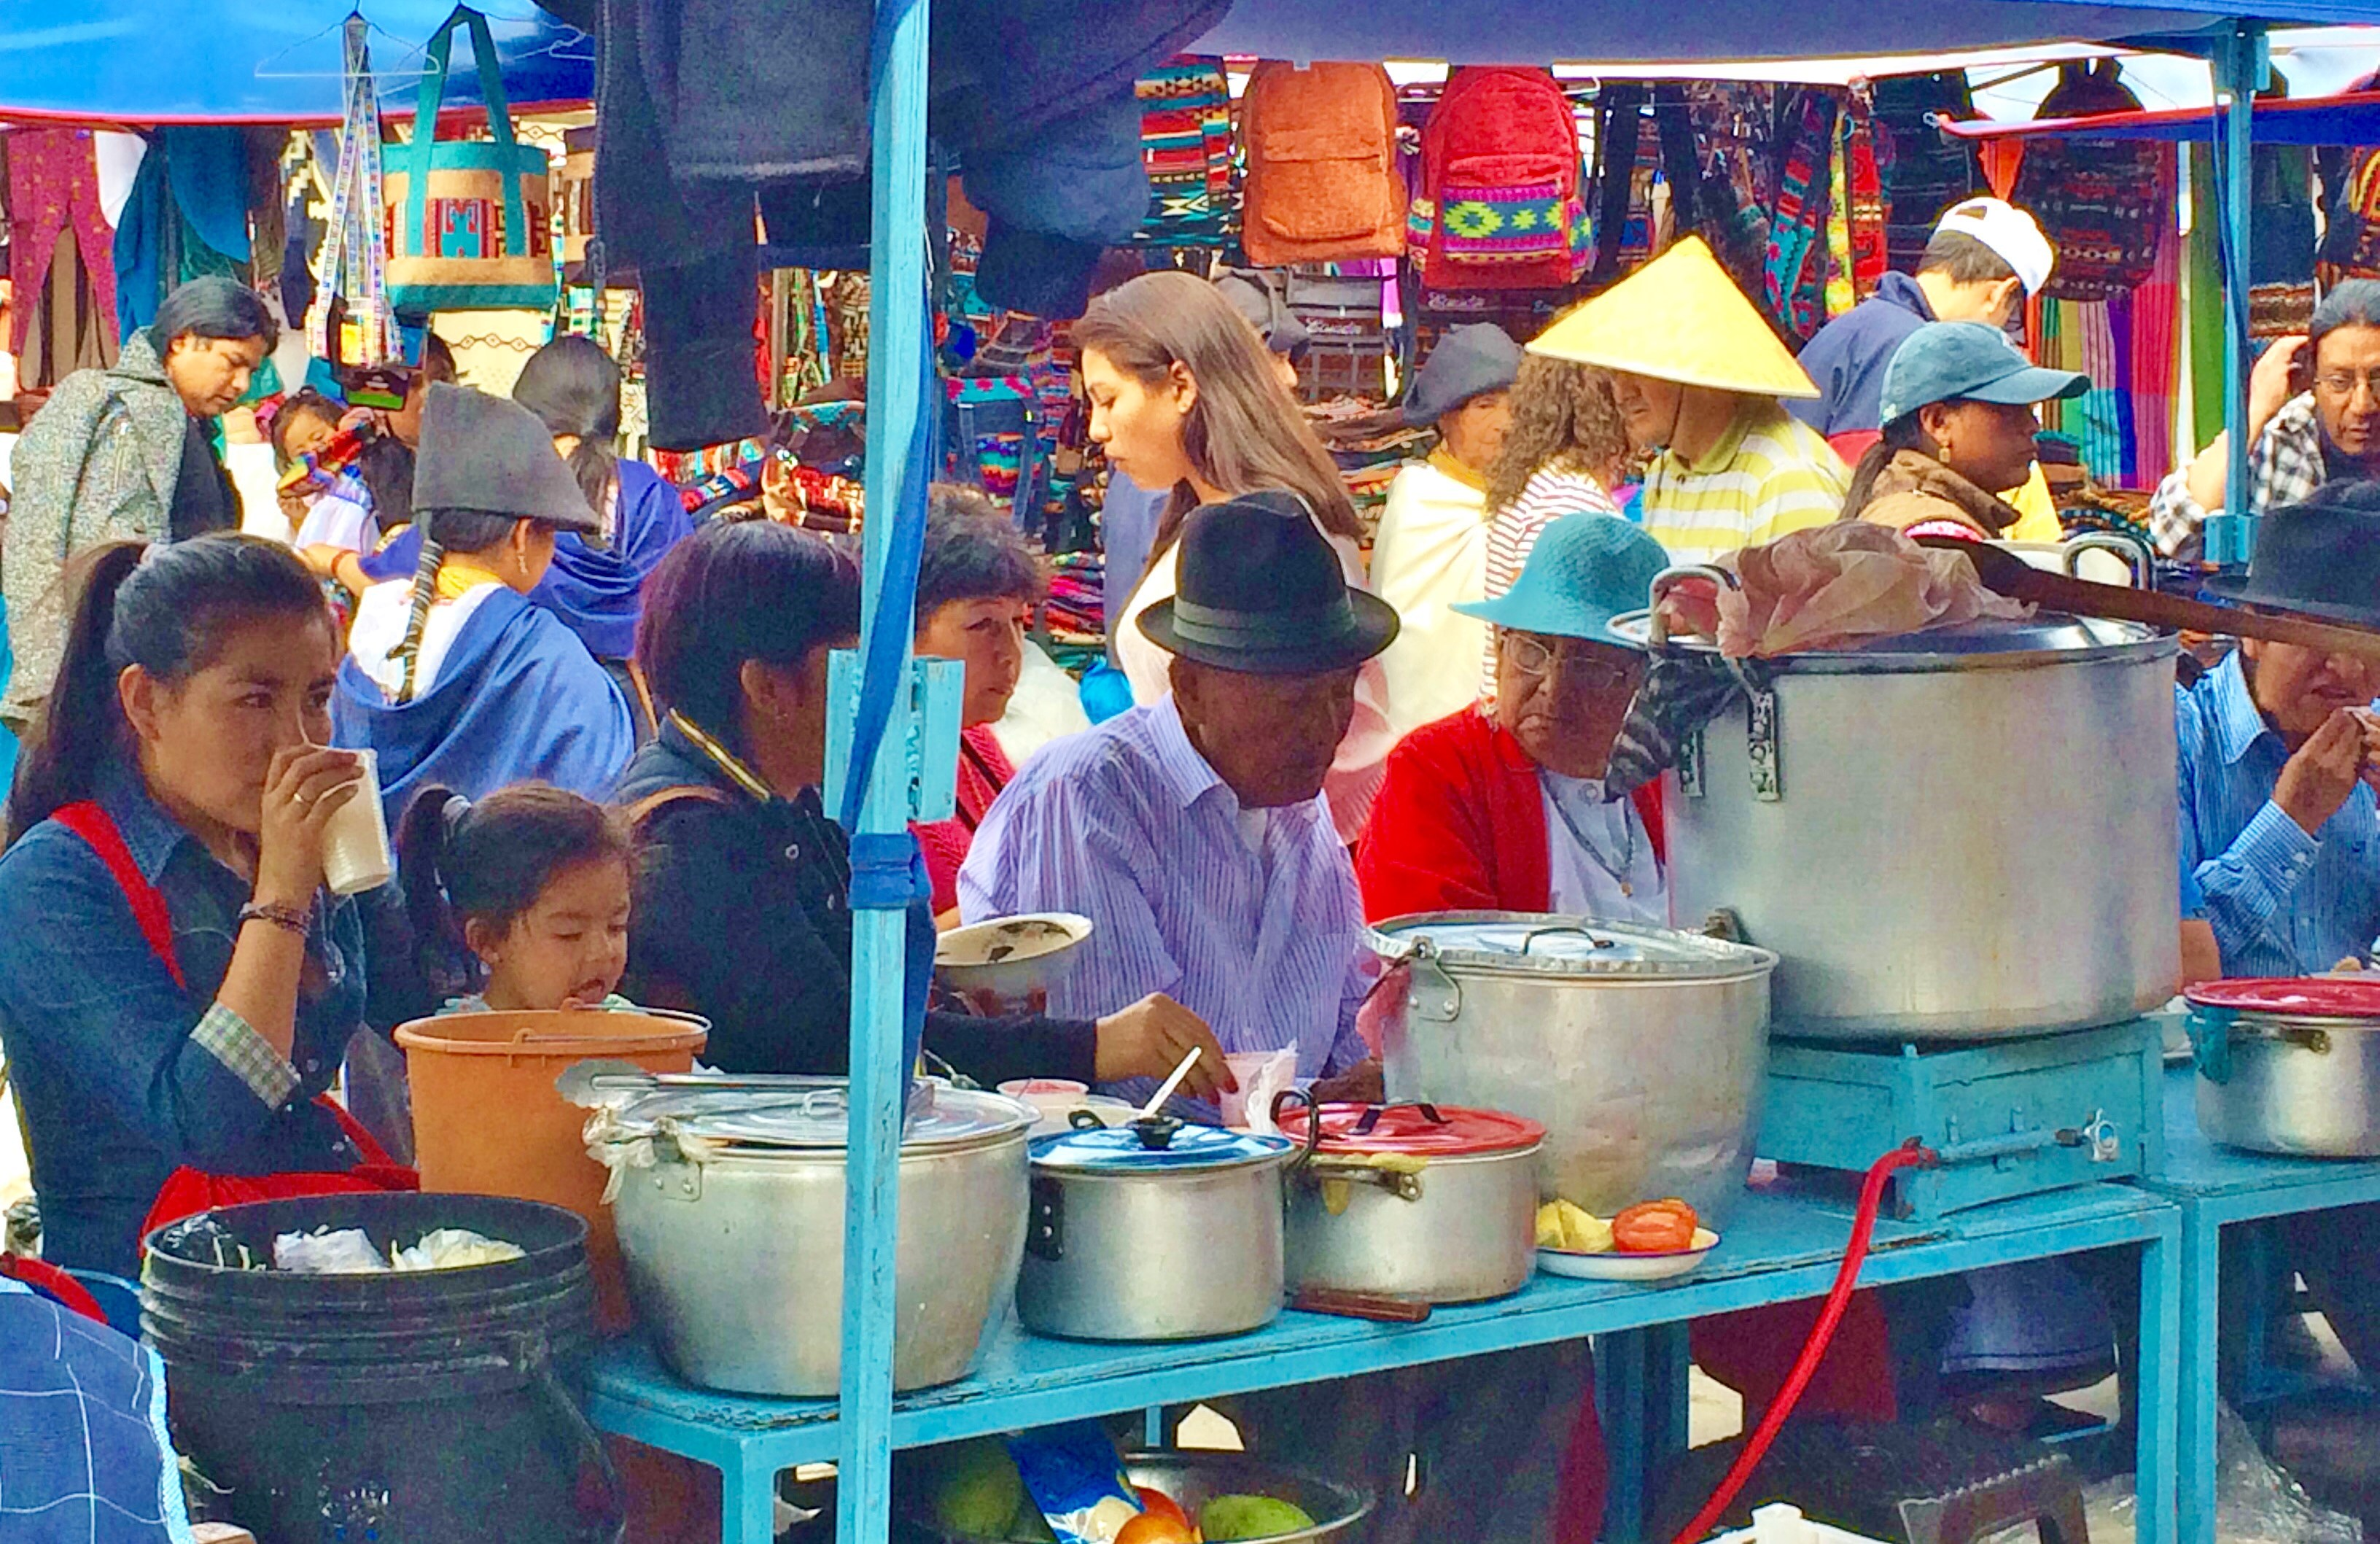 """Otavalo-Lunch-Counter """"Panama"""" Hats and Hot Springs: Two Day/Overnight Trips Out of Quito, Ecuador Ecuador"""